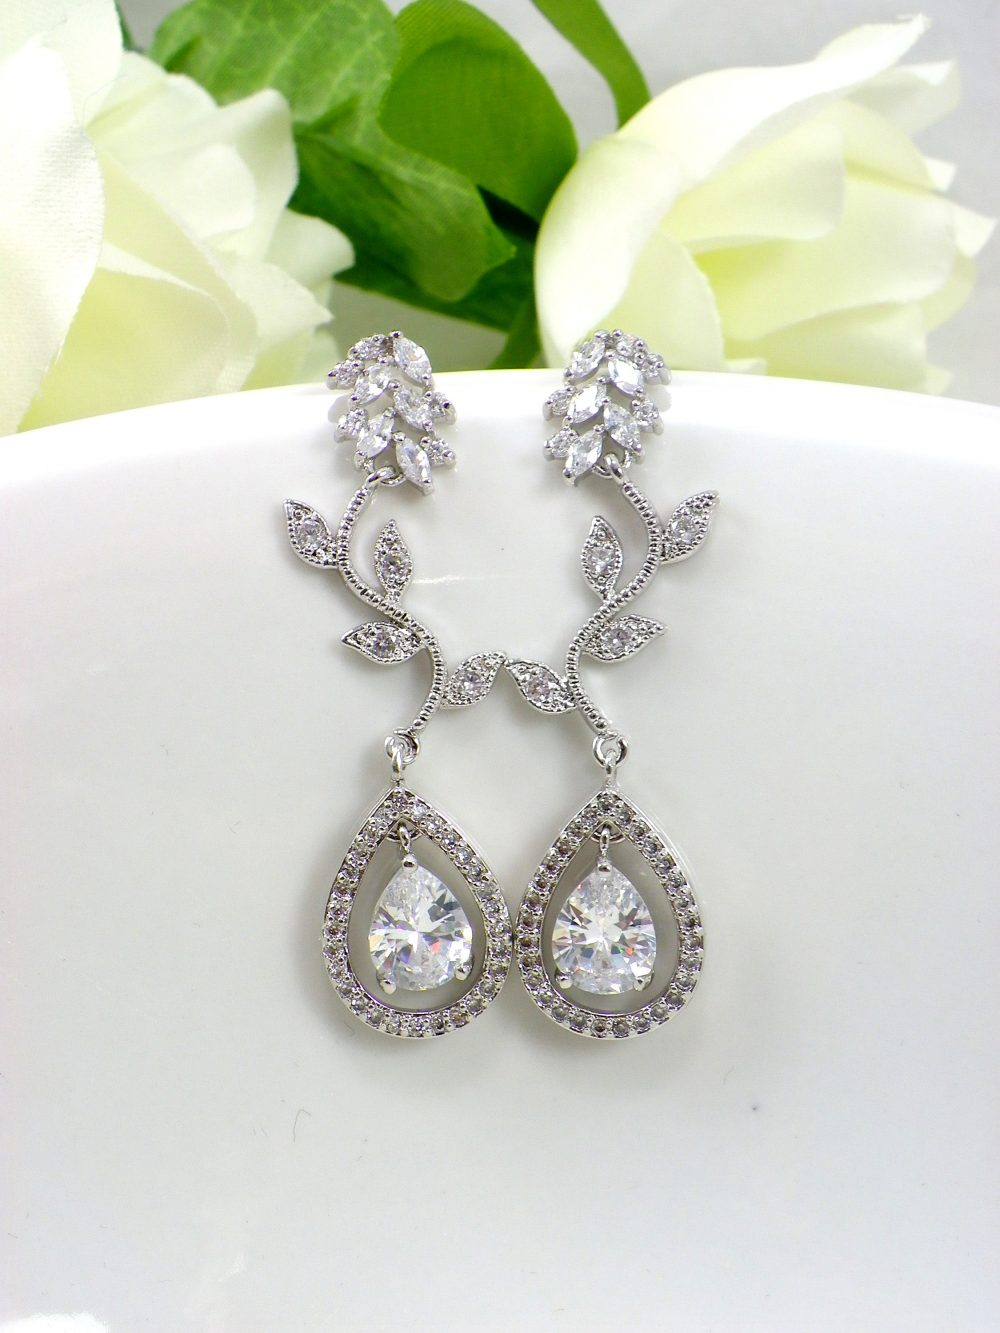 Cubic Zirconia Vine Teardrop Earrings Sparkly White Crystal Dangle Bridal Accessories Cz Bridal Wedding Earring